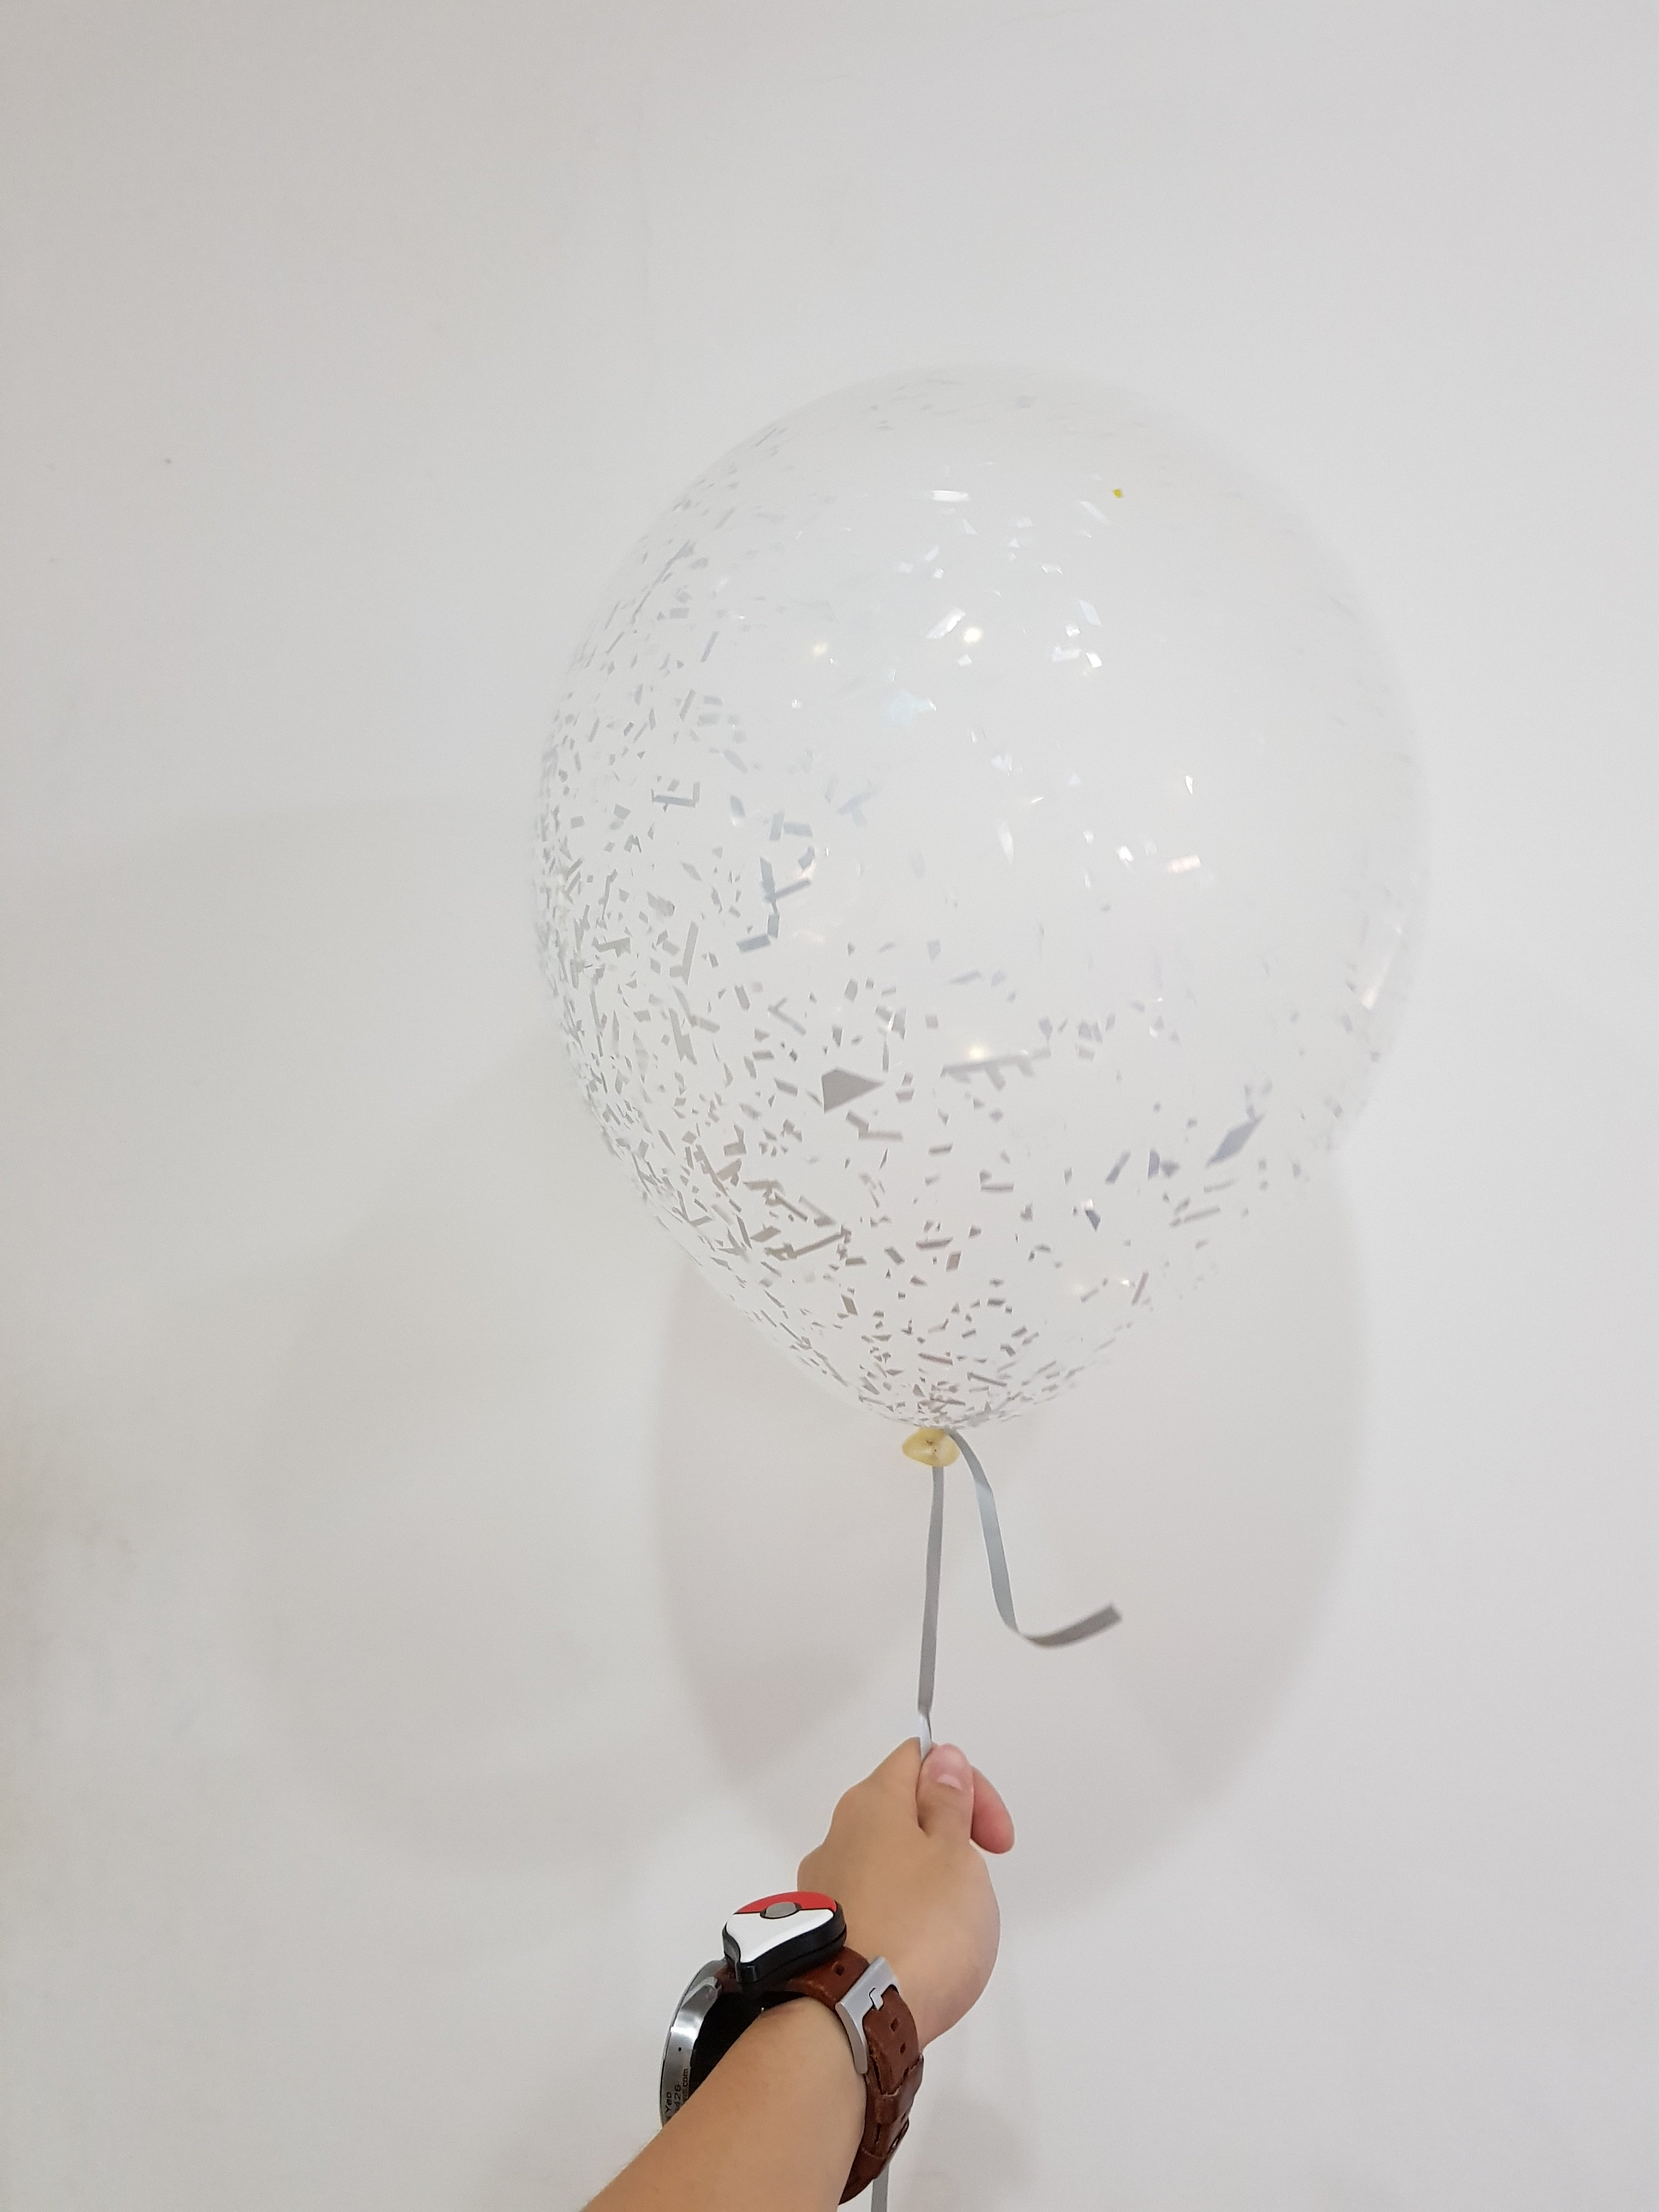 , Balloon decorations for dessert table/cake cutting table, Singapore Balloon Decoration Services - Balloon Workshop and Balloon Sculpting